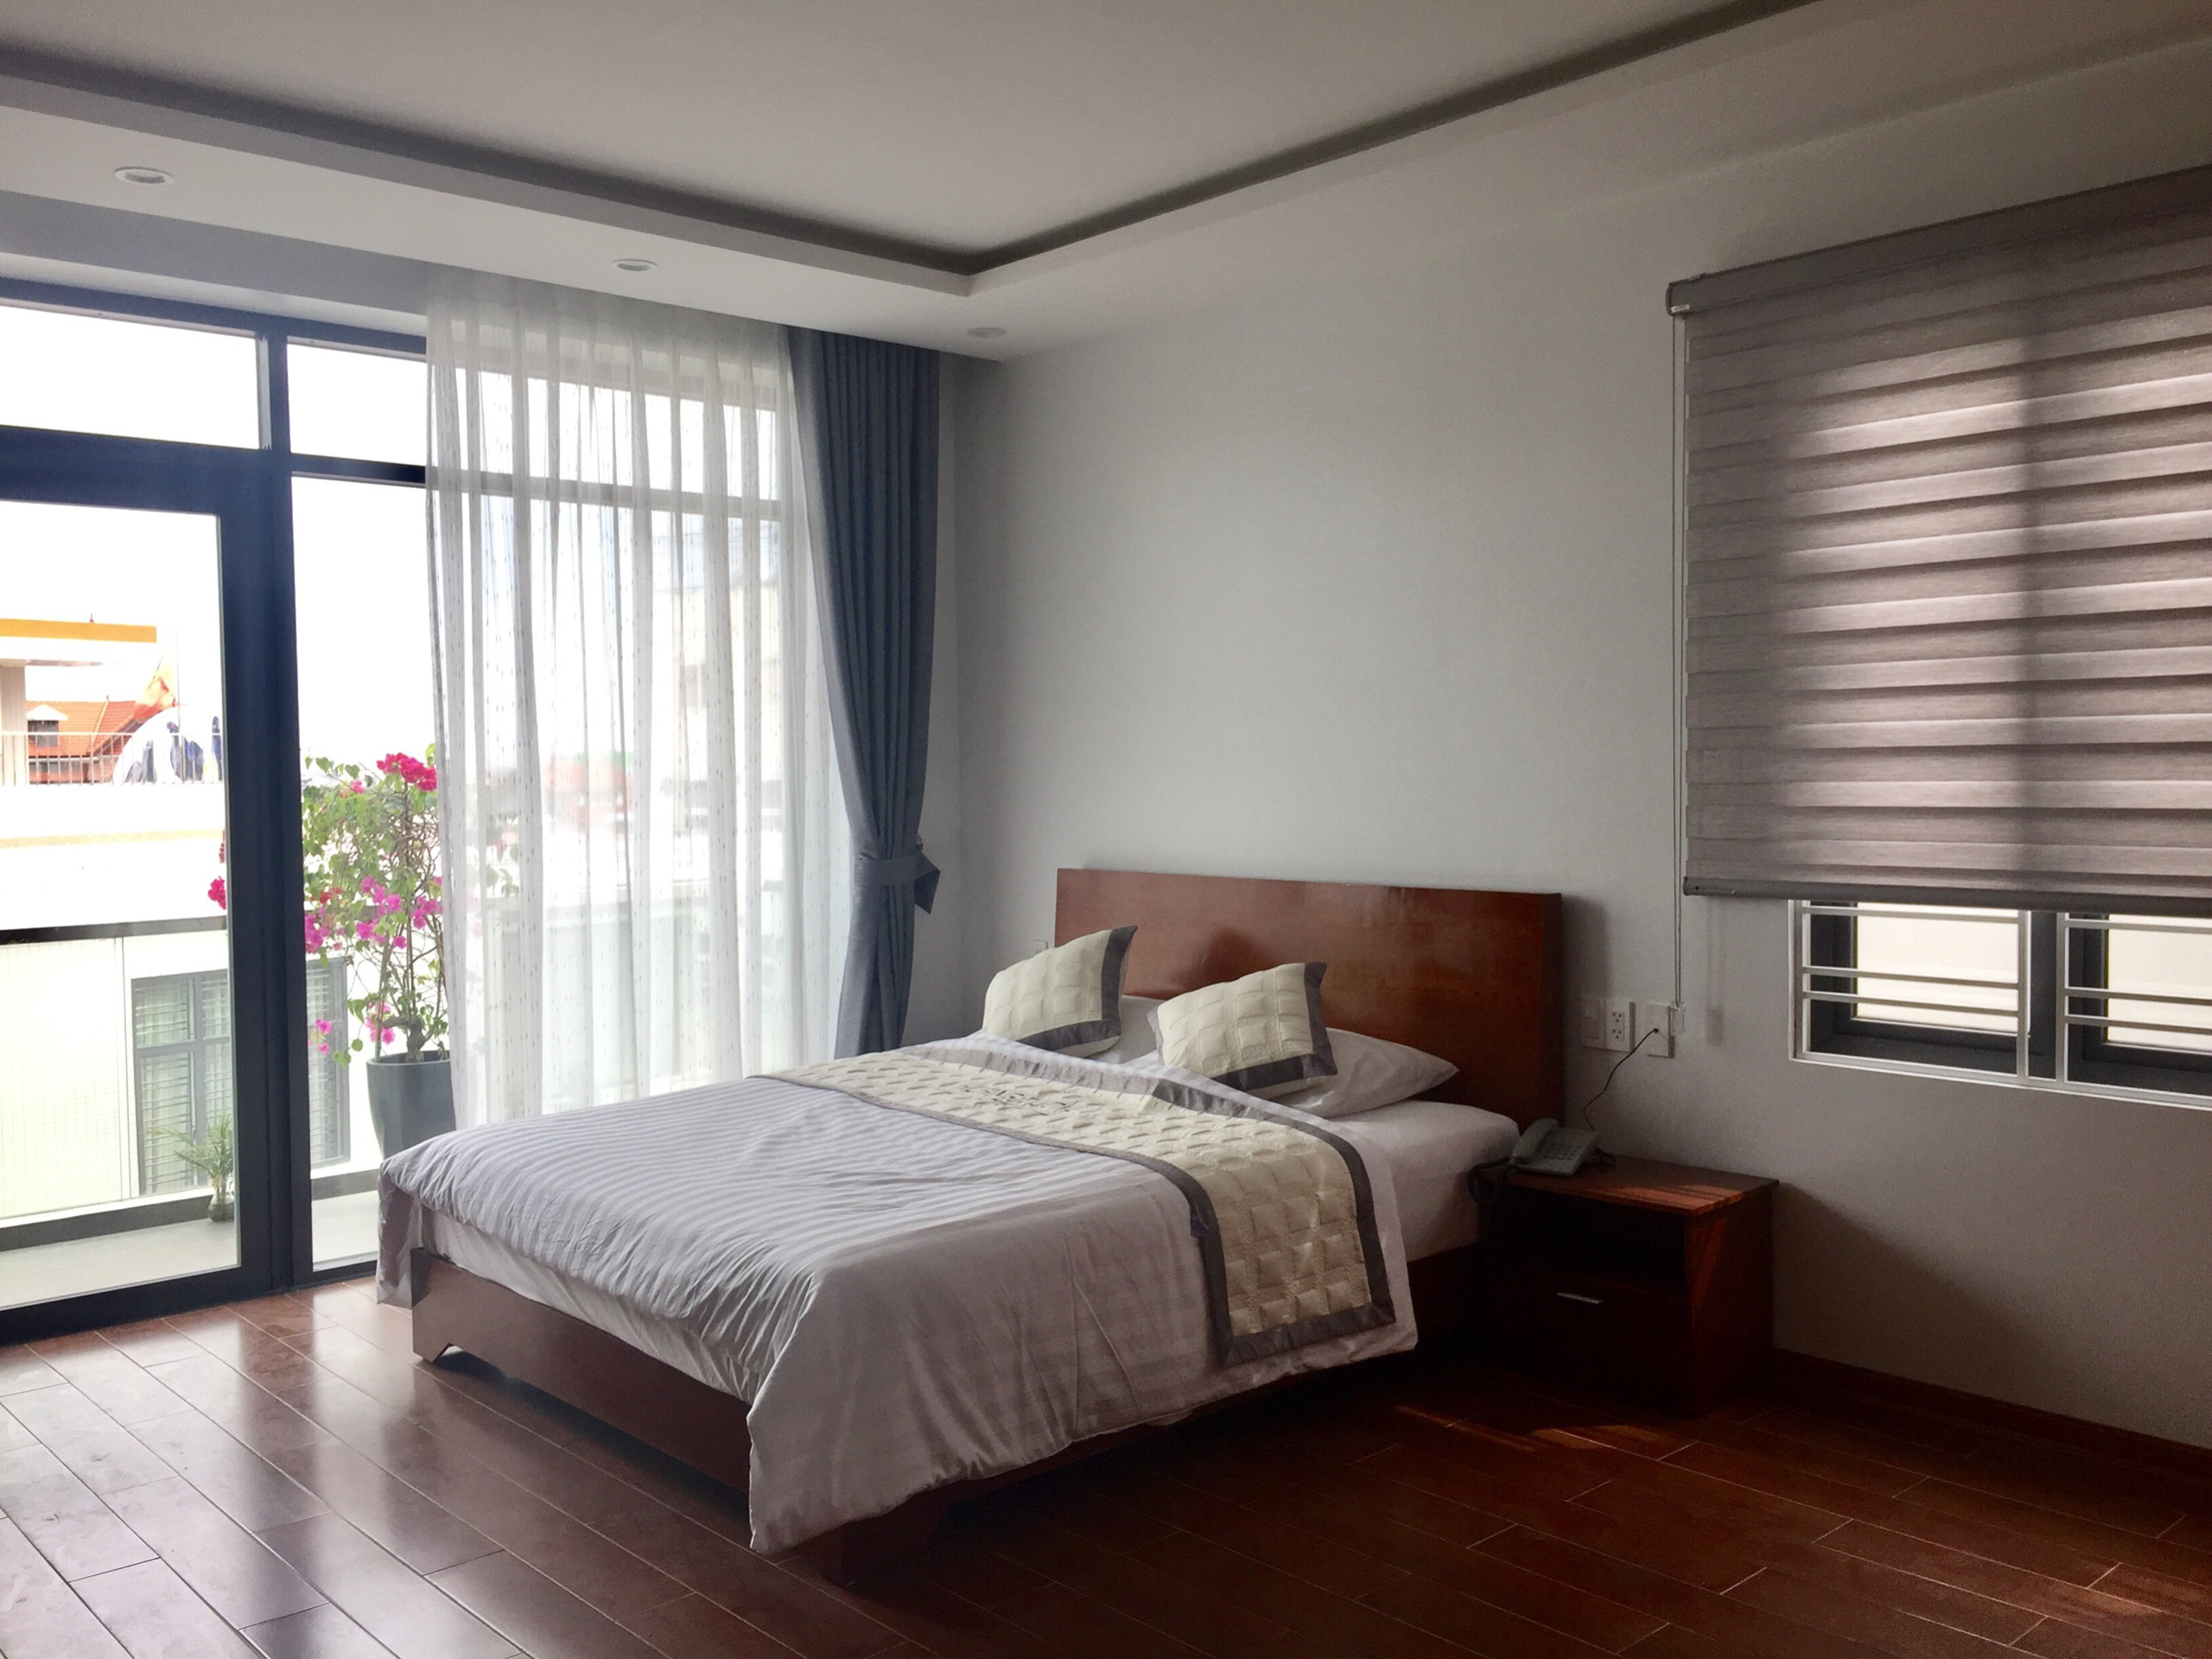 Furnished 1-2 BRs apartment at Le Hong Phong str., Hai Phong city